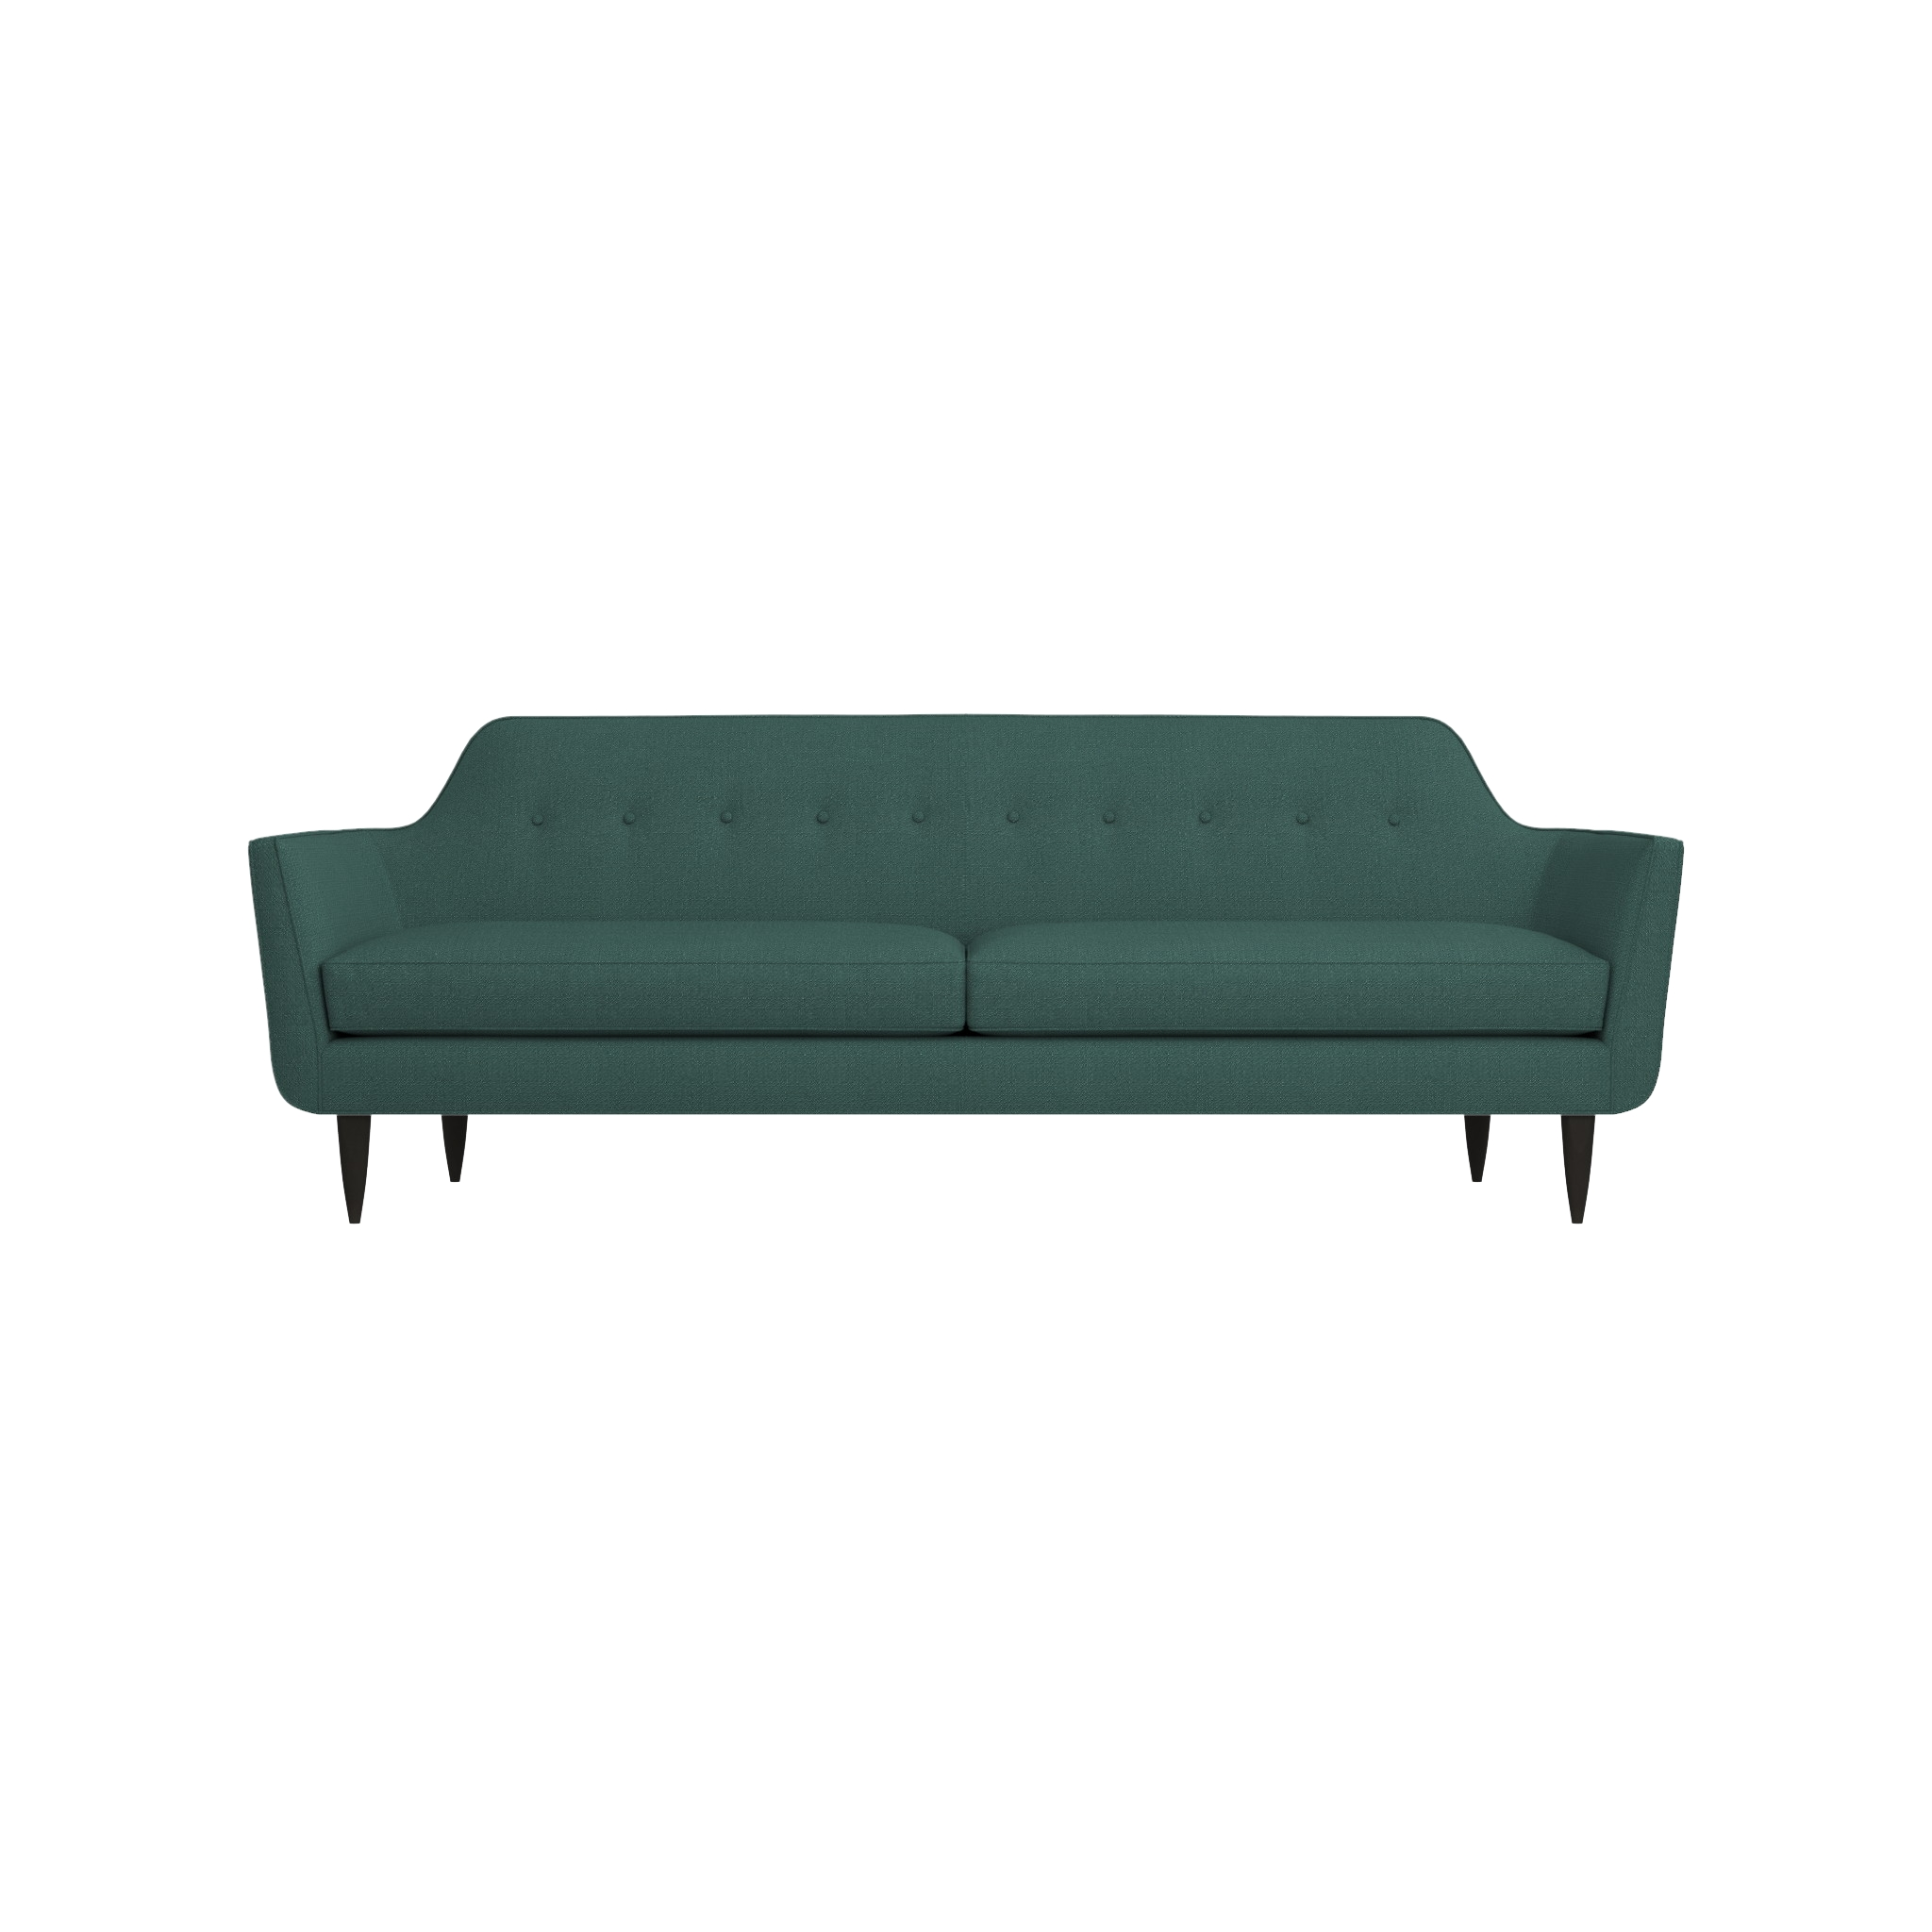 Gia Modern Blue Tufted Sofa | Crate And Barrel Within Crate And Barrel Futon Sofas (View 11 of 20)